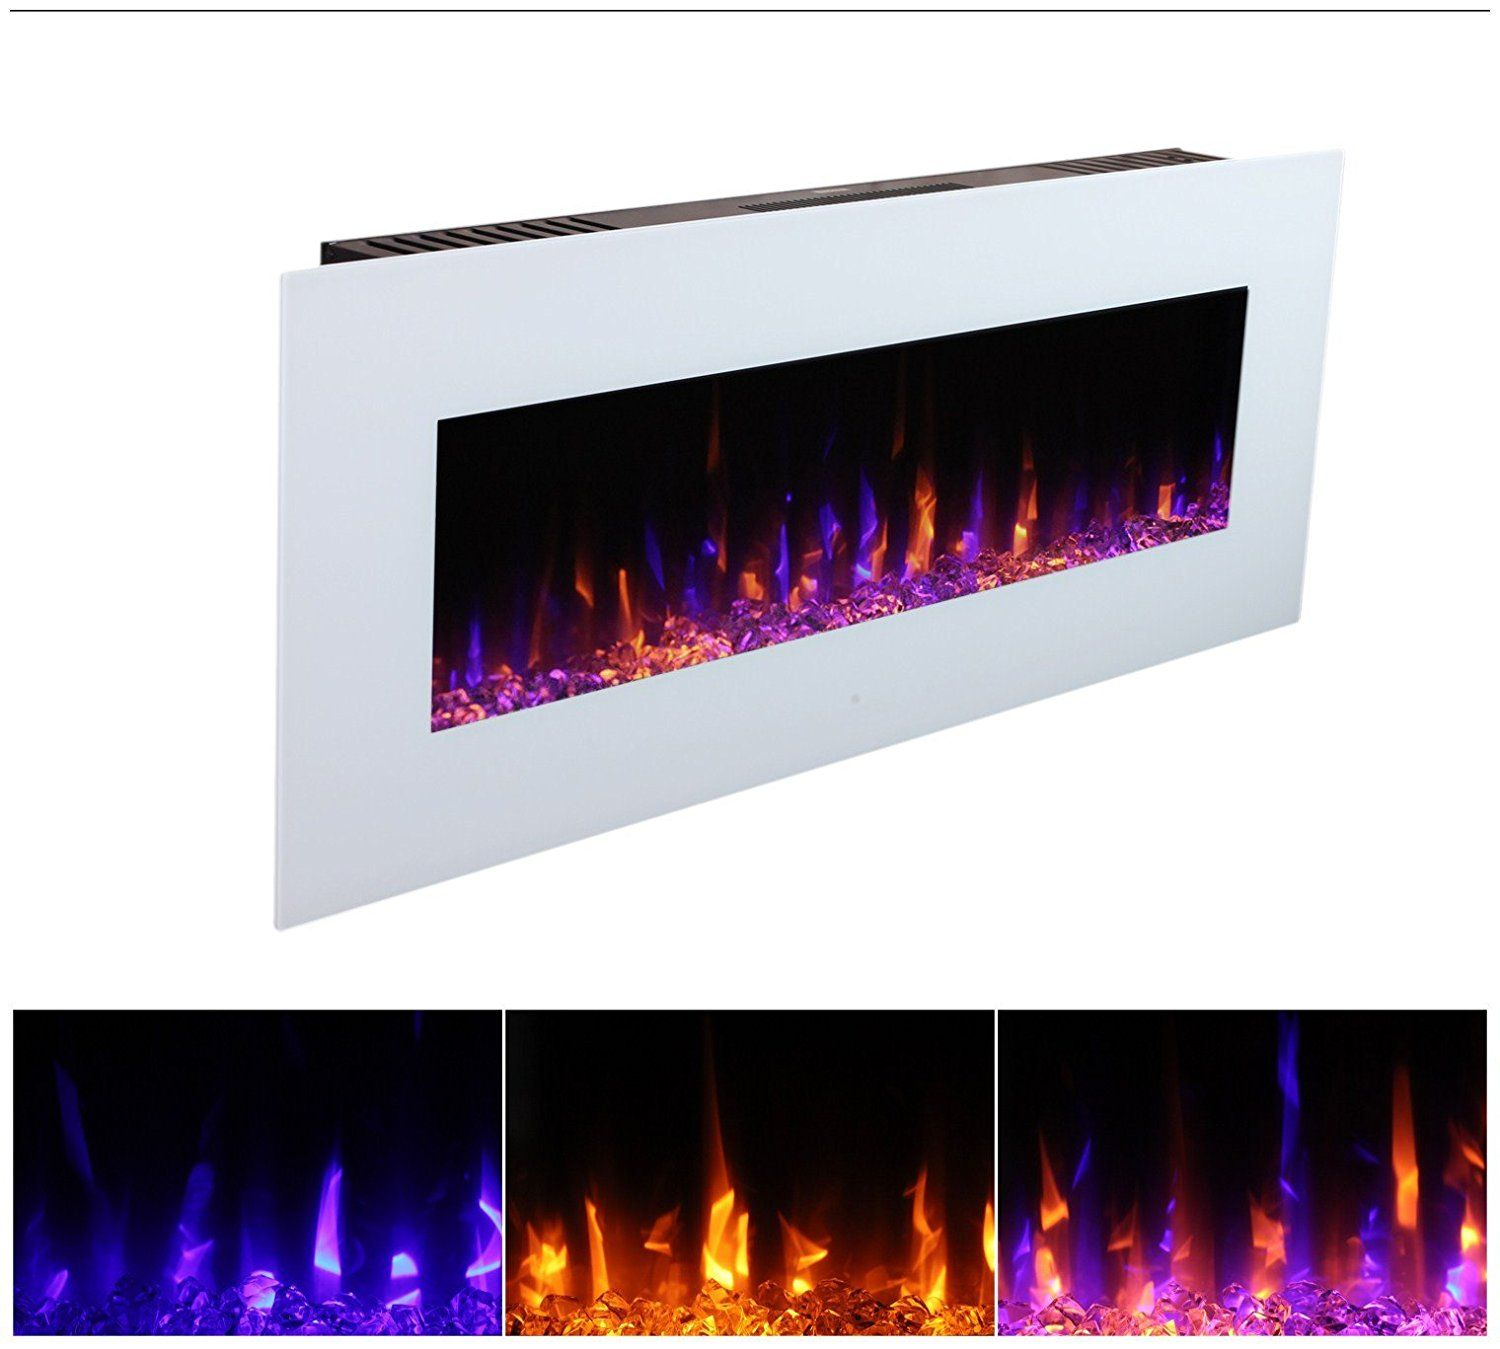 3g Plus 50 Electric Fireplace Wall Mounted Heater Crystal Stone